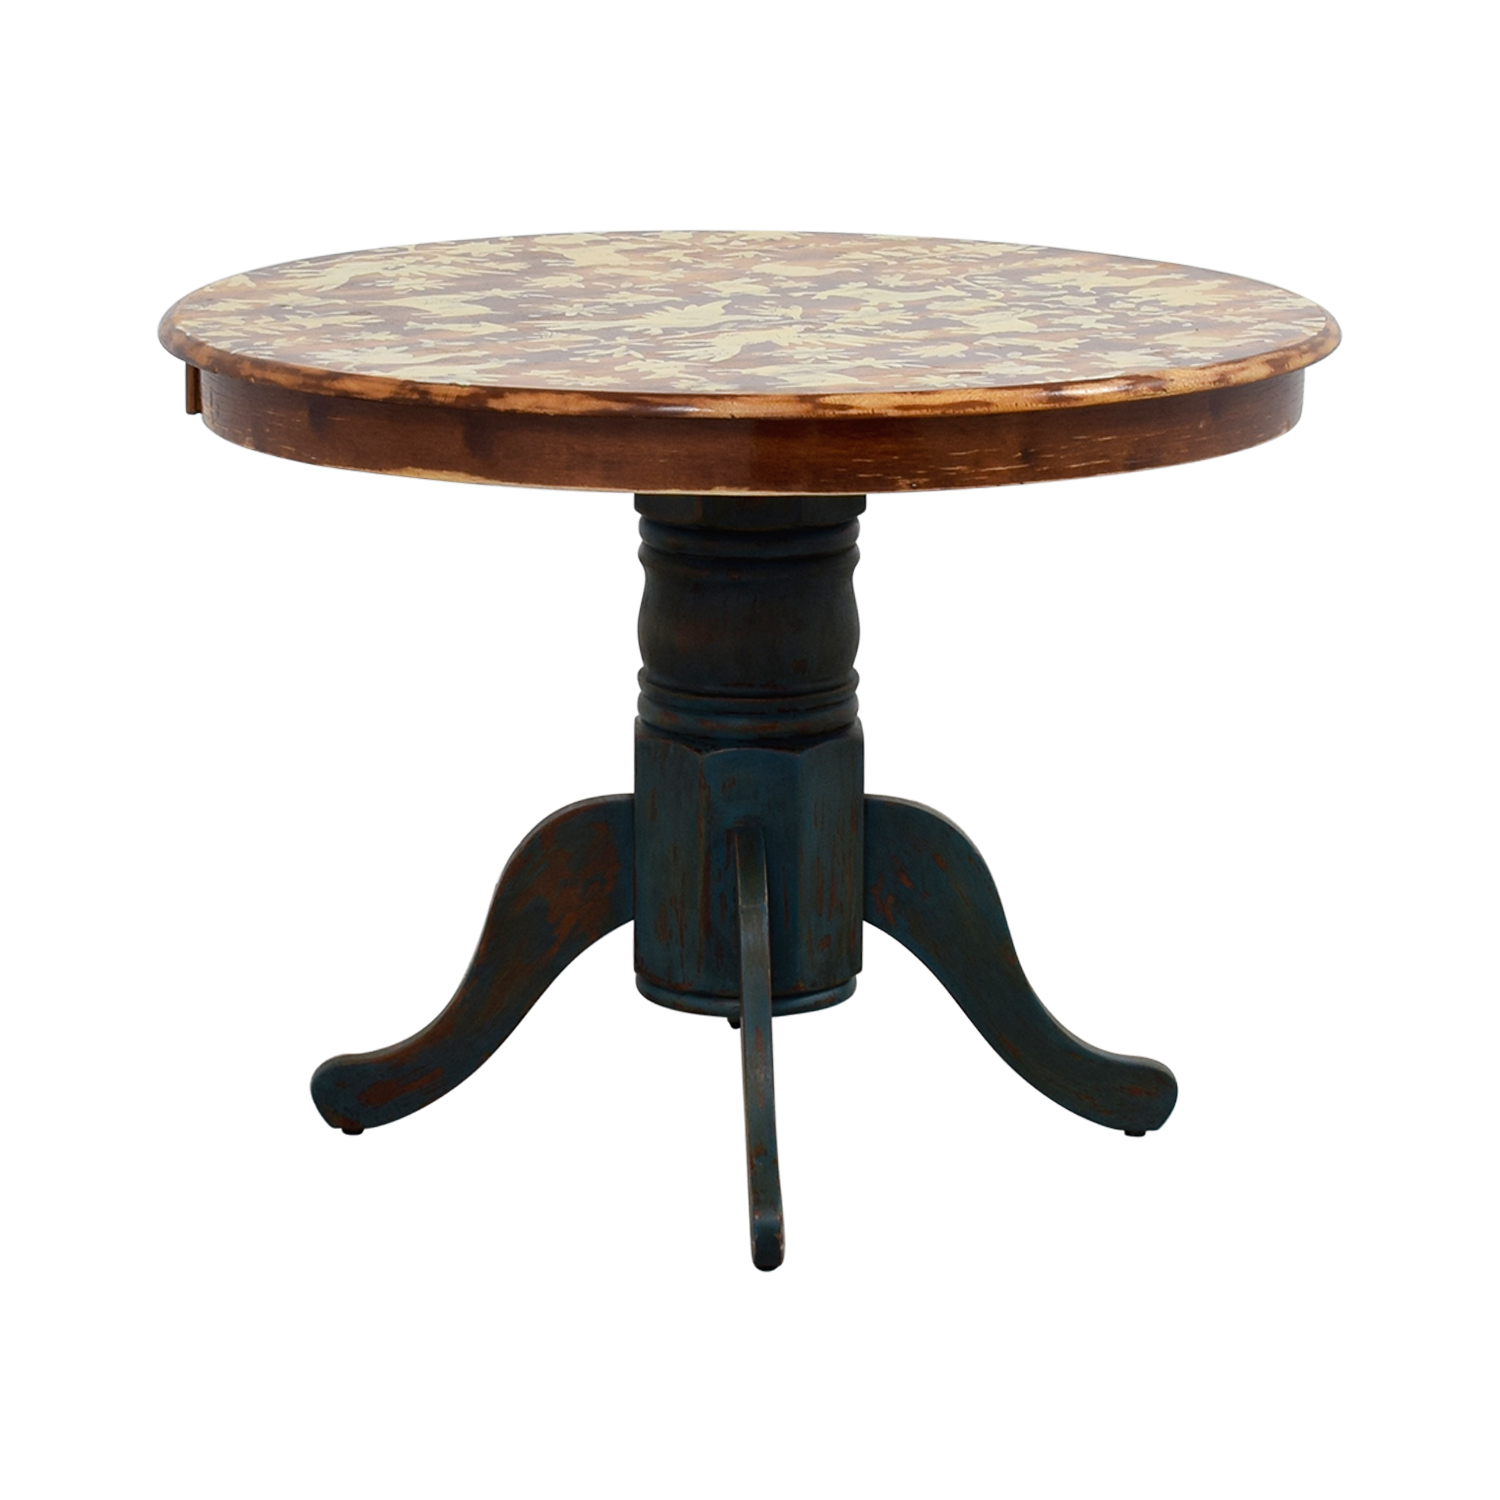 Hand-Stenciled Farmhouse Style Round Kitchen Table / Tables